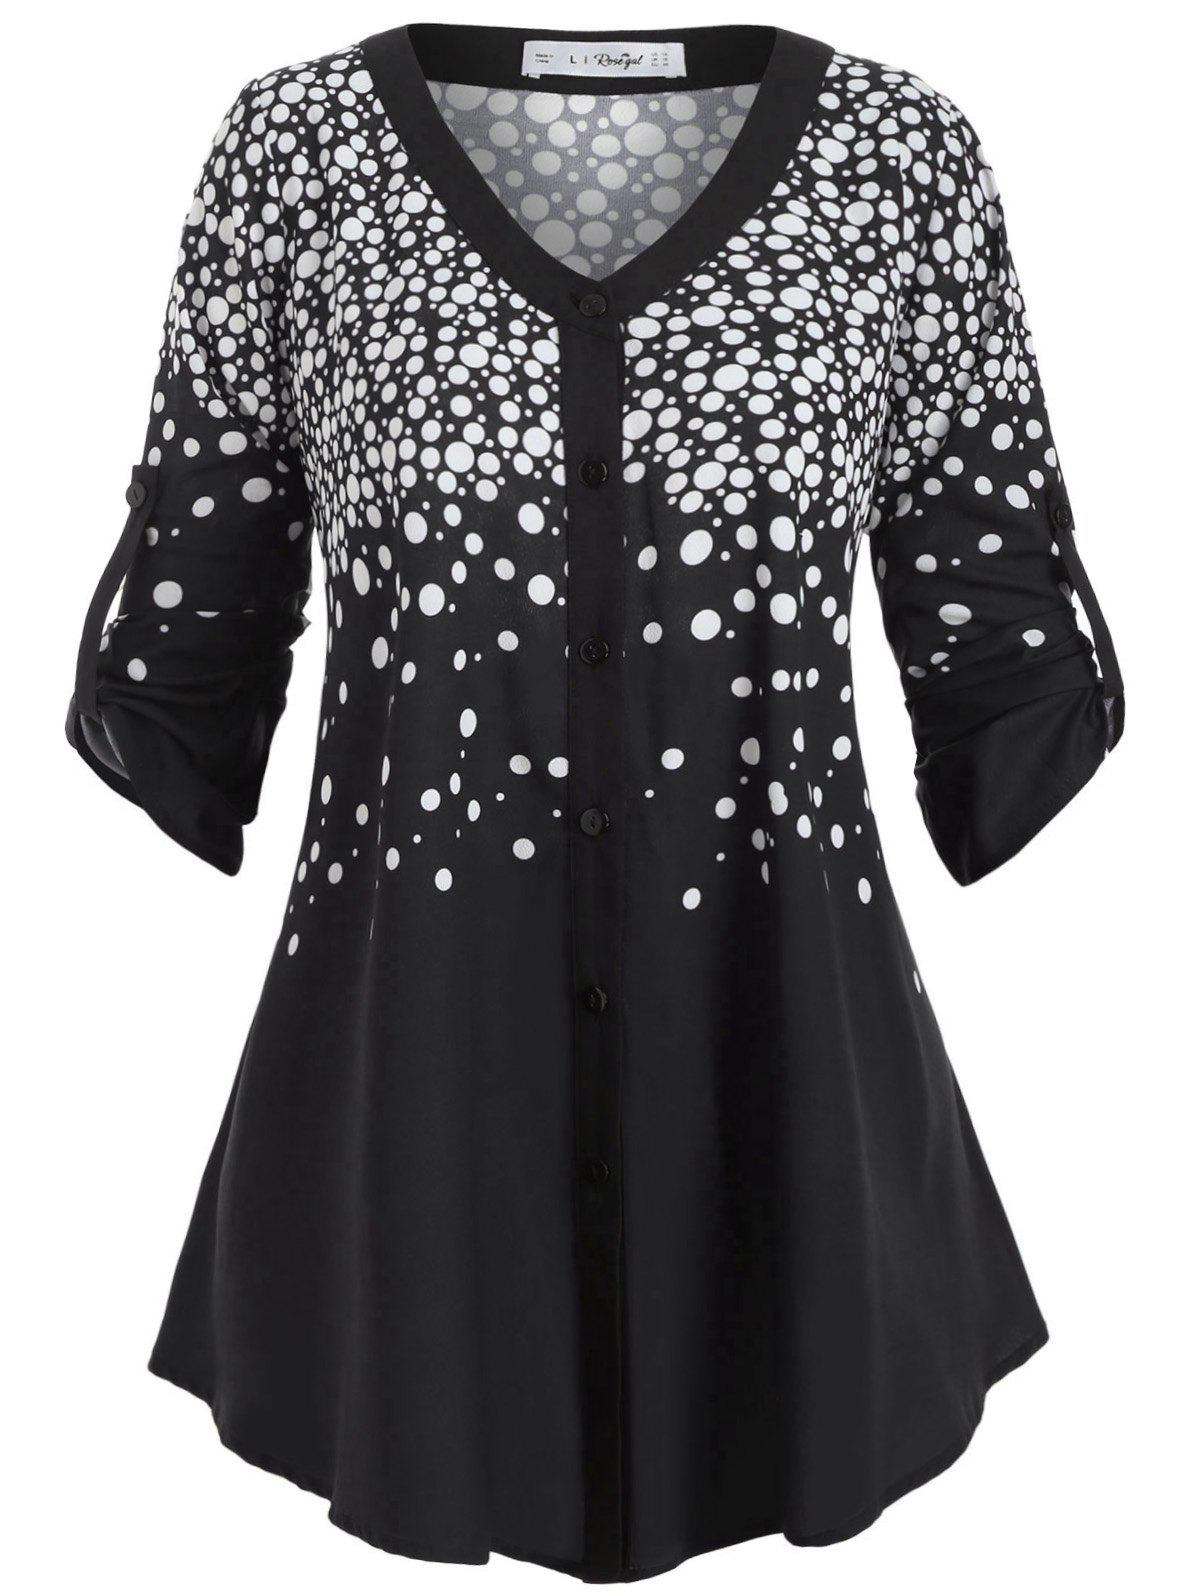 Button Up Buttoned Tabs Polka Dot Plus Size Top - BLACK L